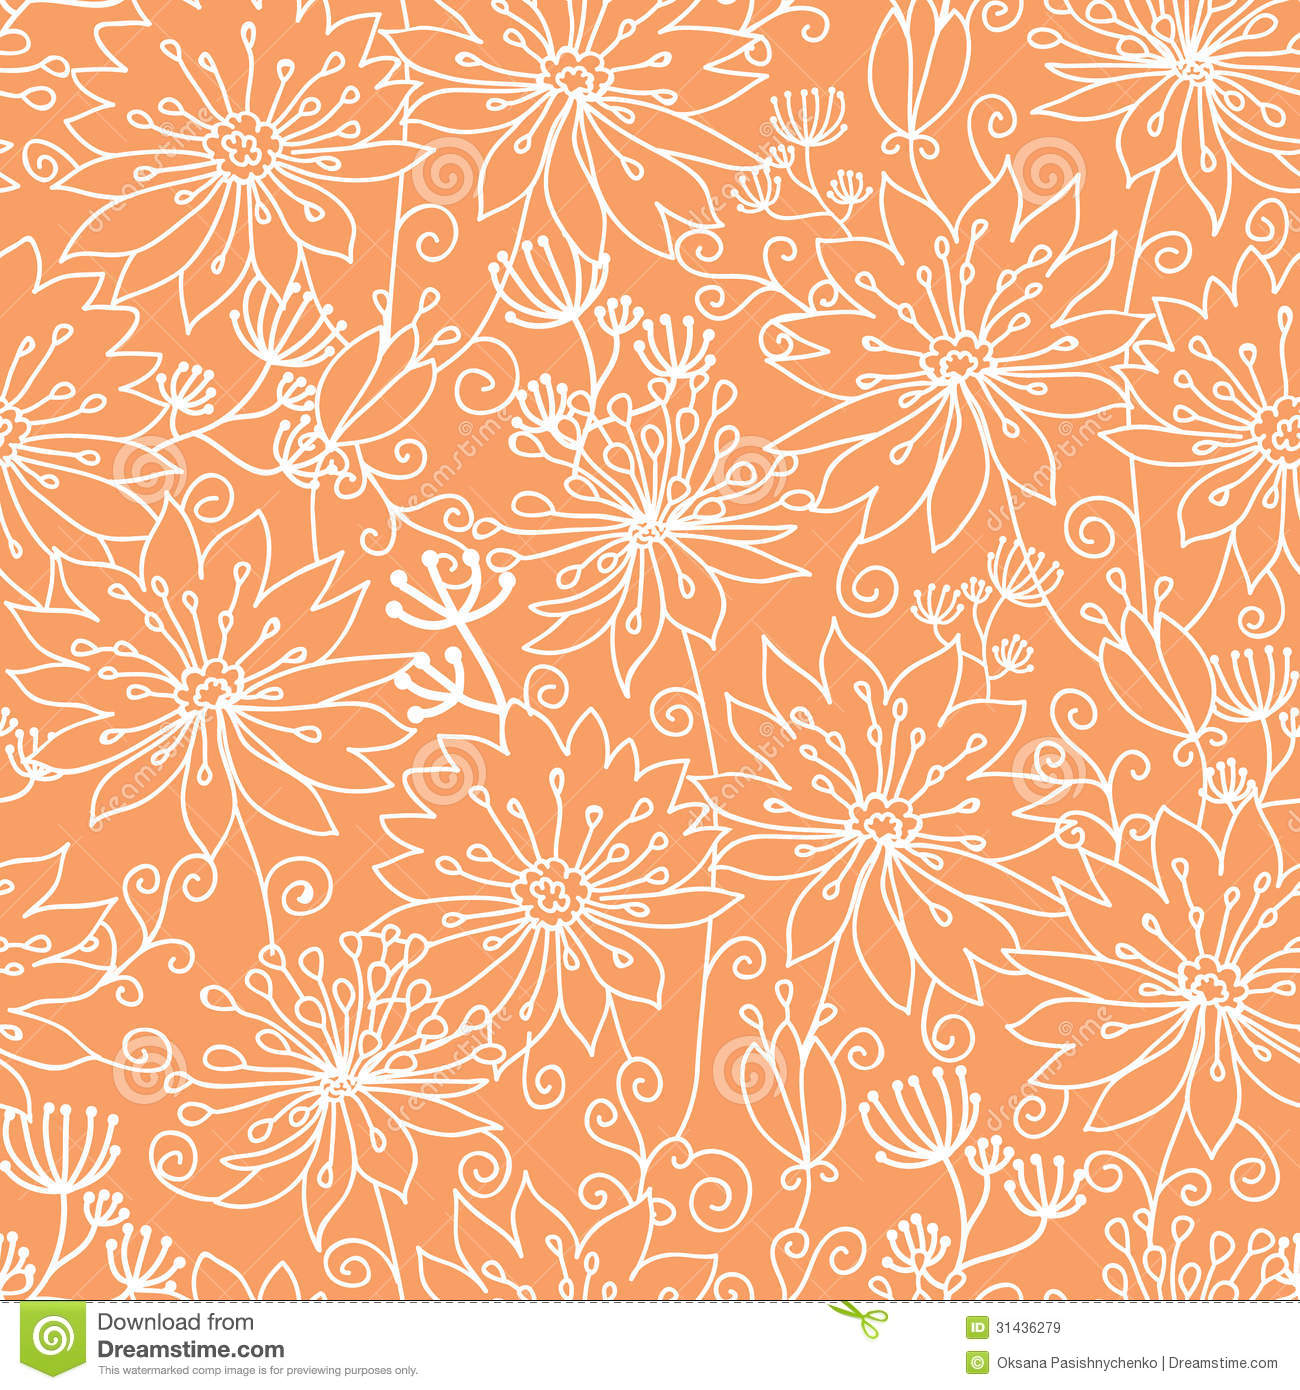 Orange And White Lineart Flowers Seamless Pattern Stock